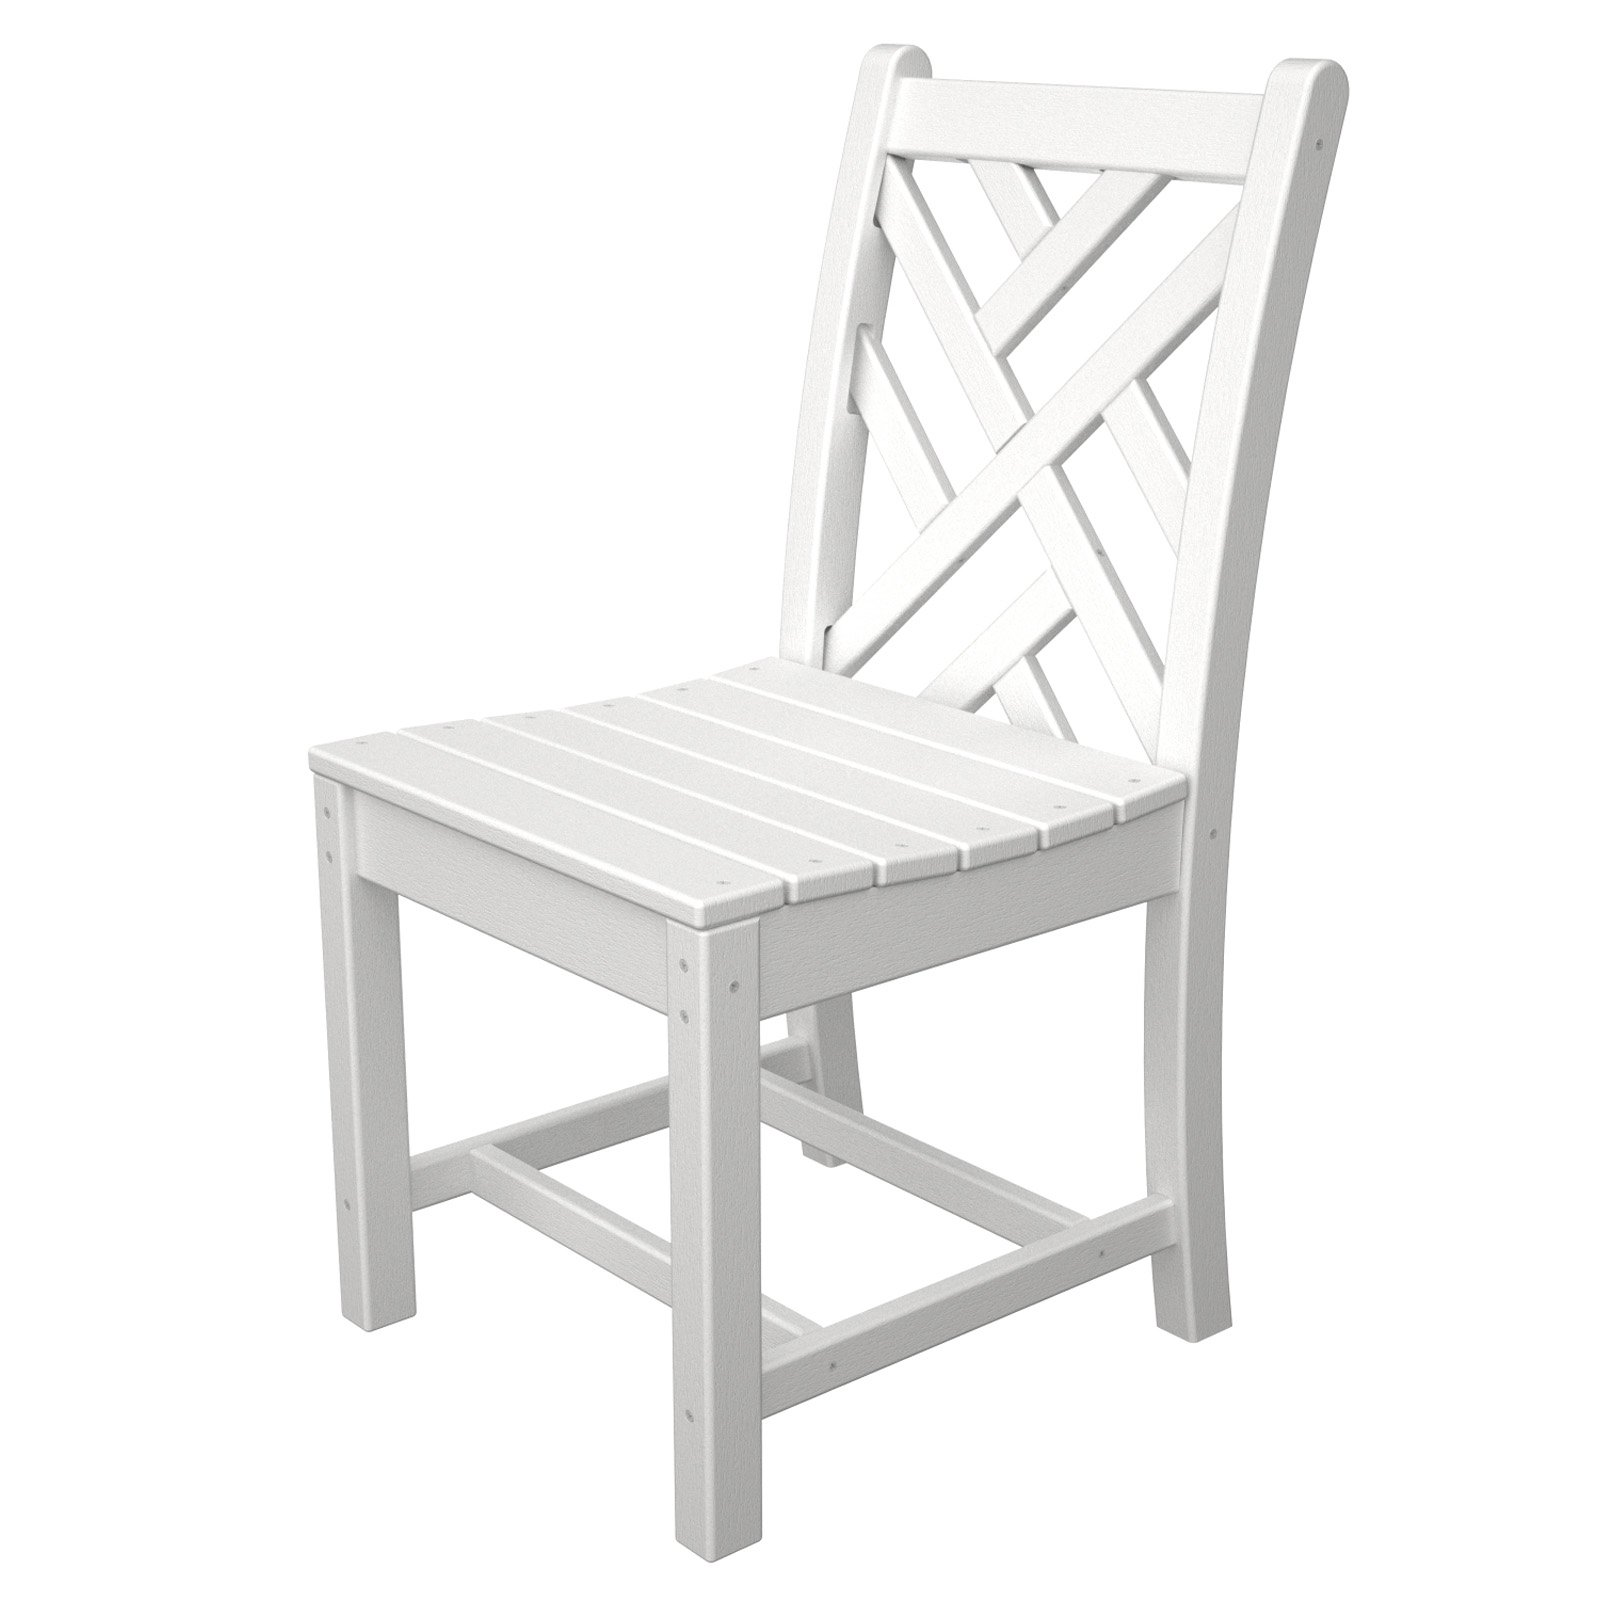 outdoor polywood chippendale recycled plastic dining side chair rh pinterest com